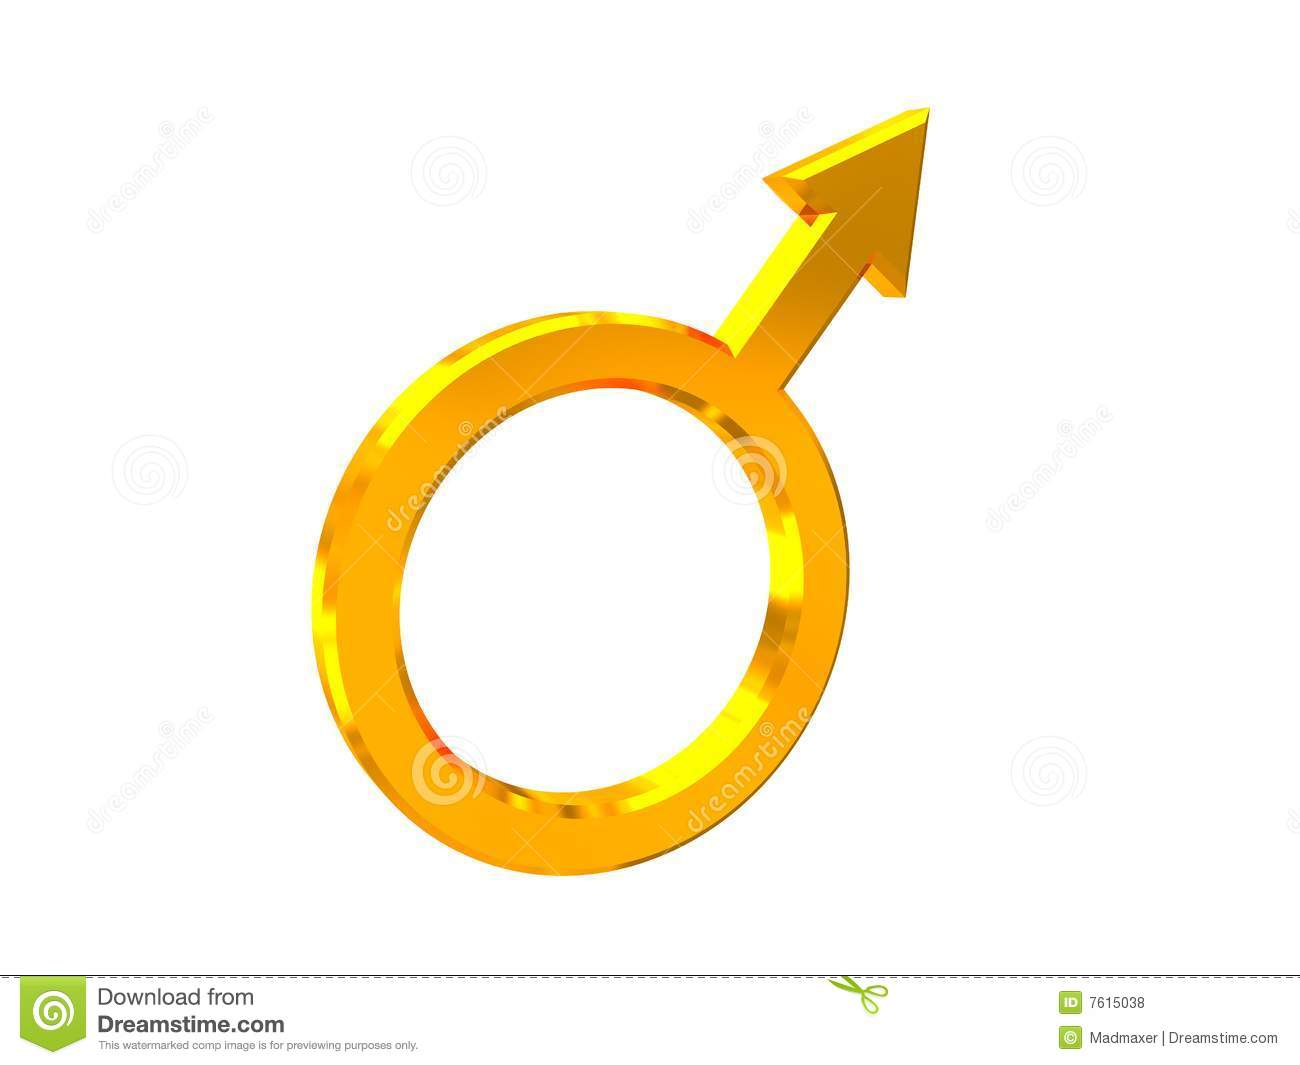 male sex symbol of all time in Ohio